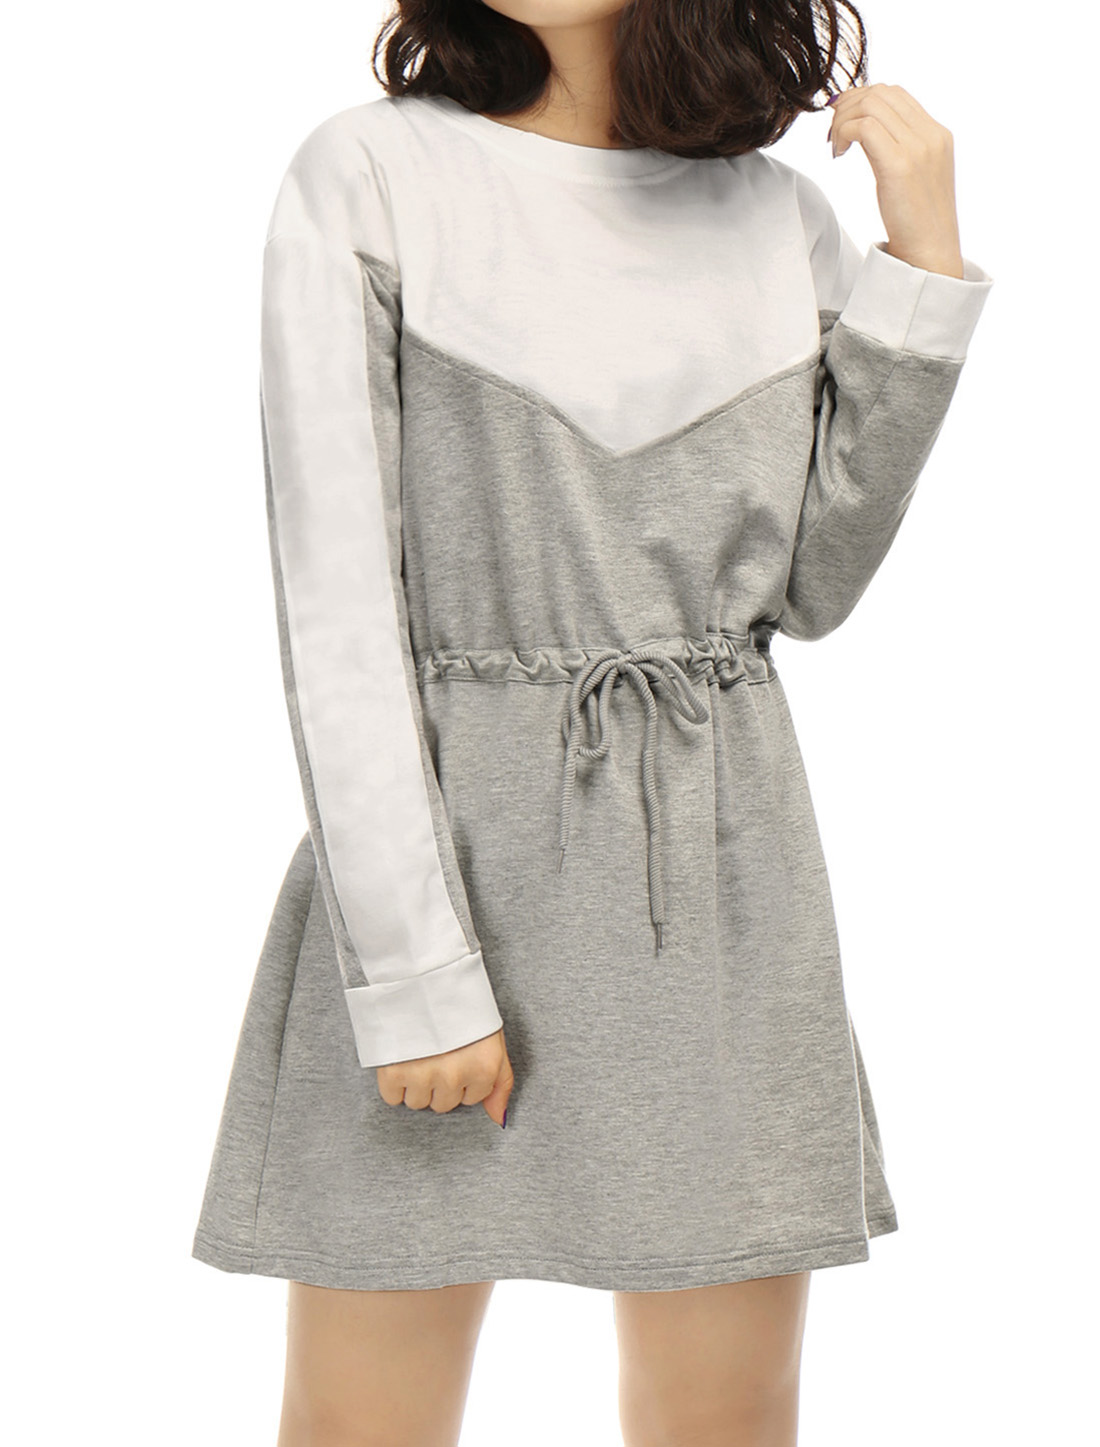 Women Long Sleeves Drawstring Waist Contrast Color Tunic Dress Gray XS